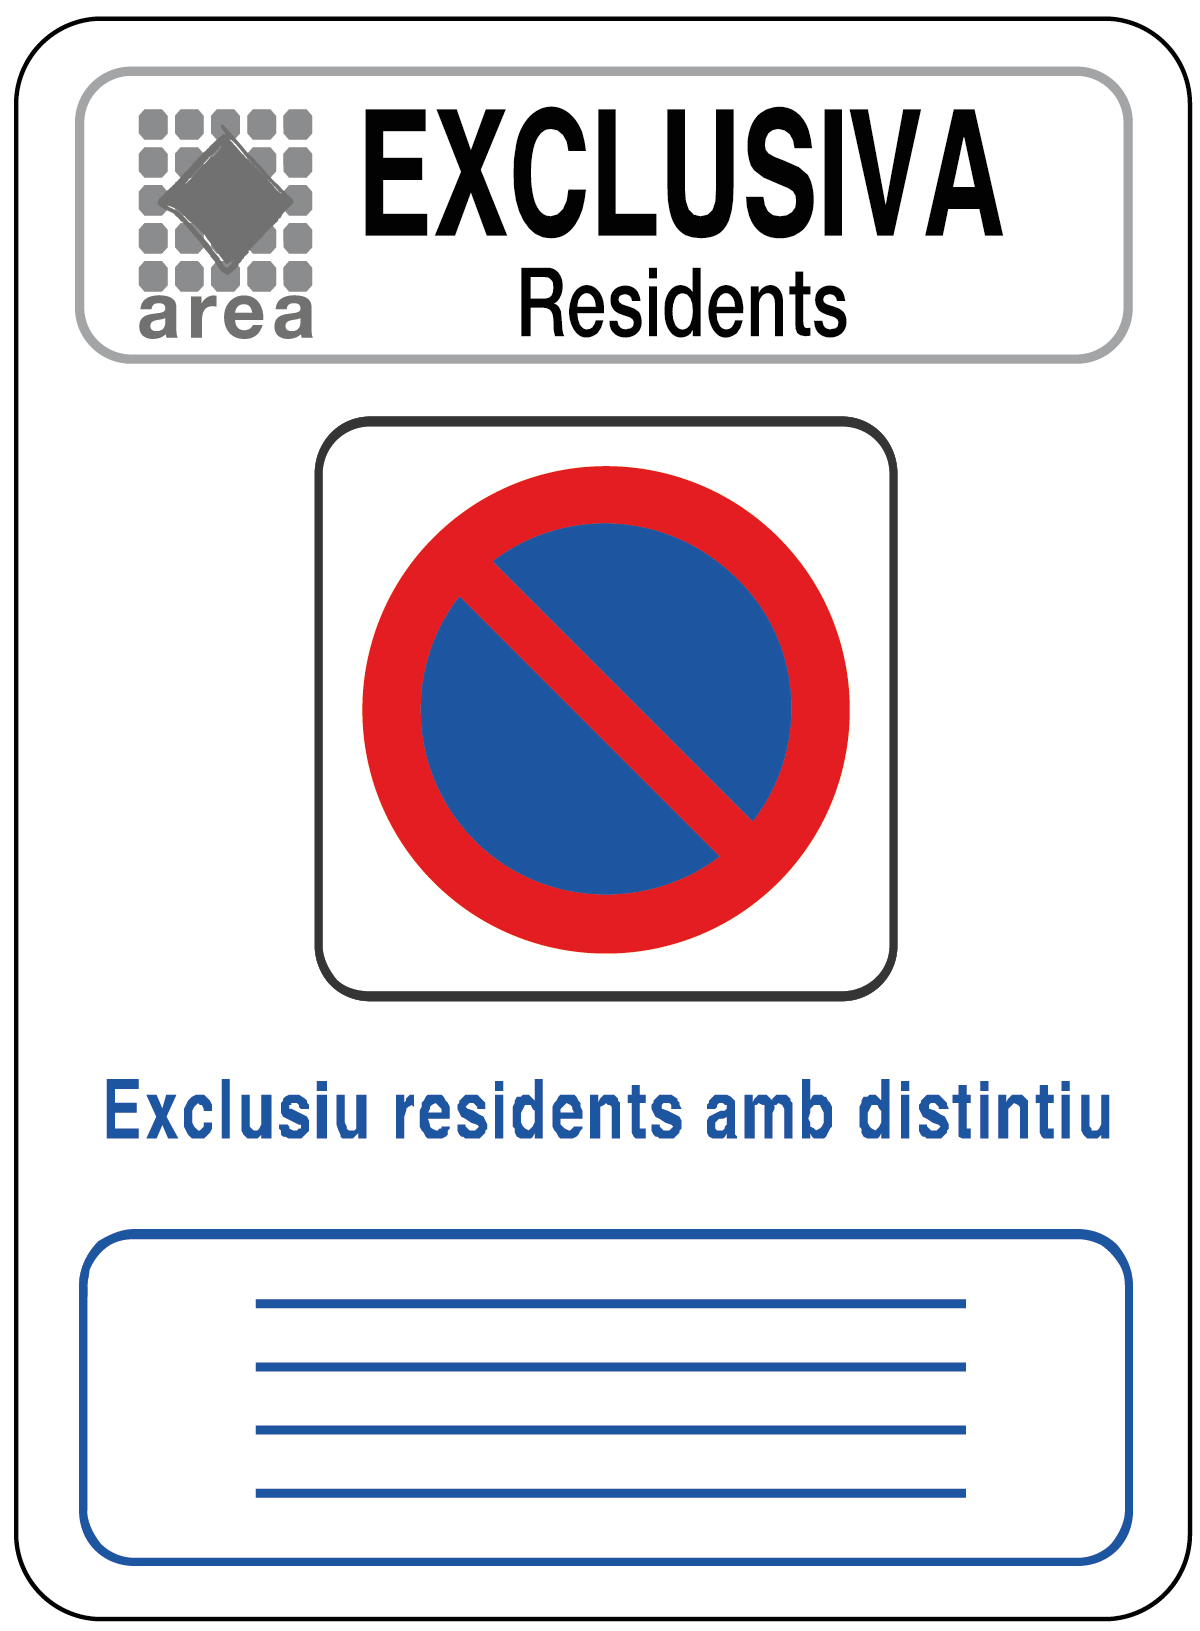 exclusiva_residents